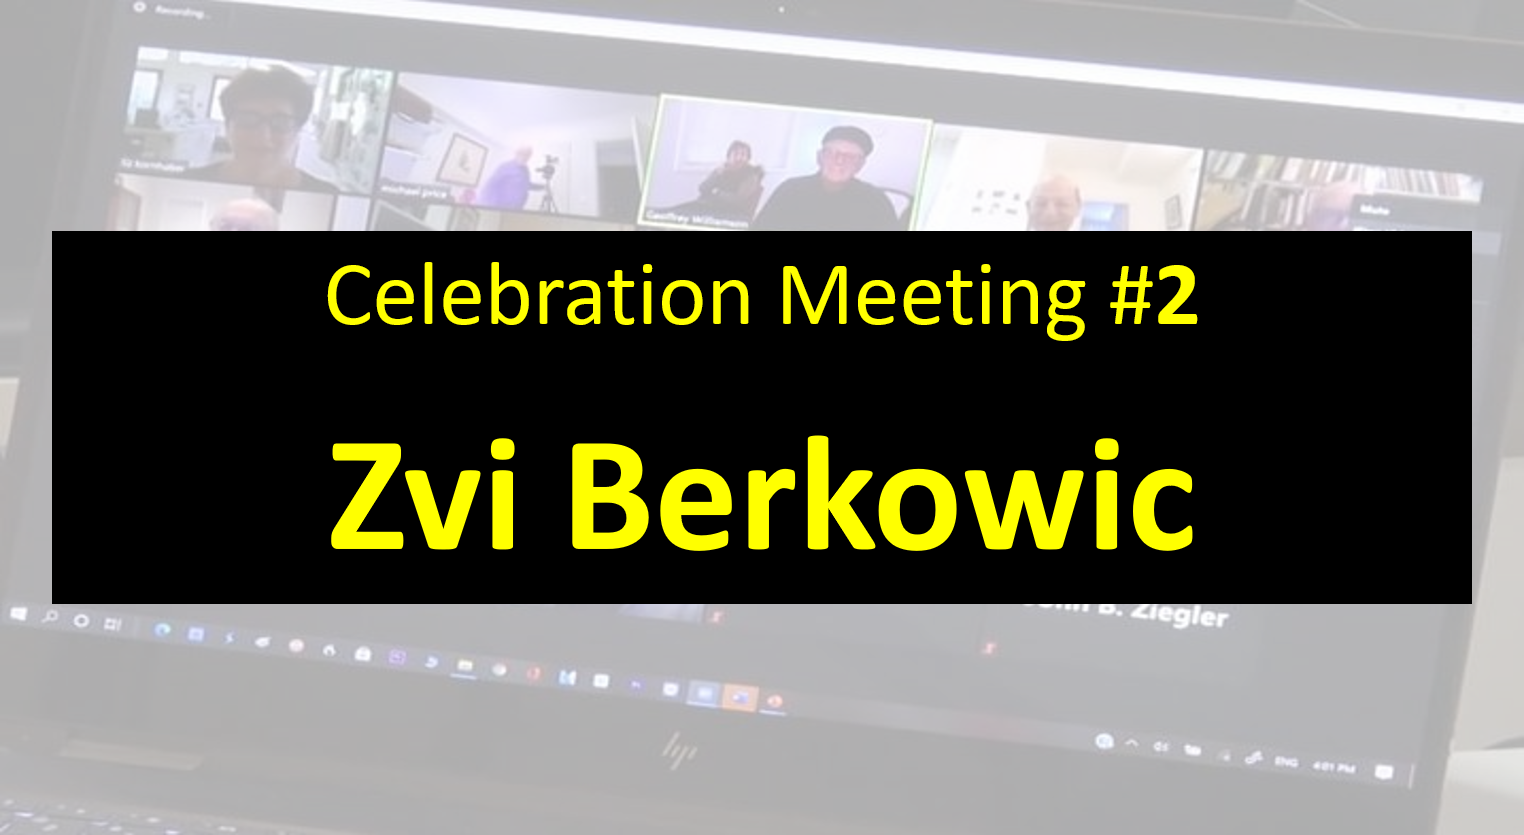 Celebration Meeting - #2 Zvi Berkowic